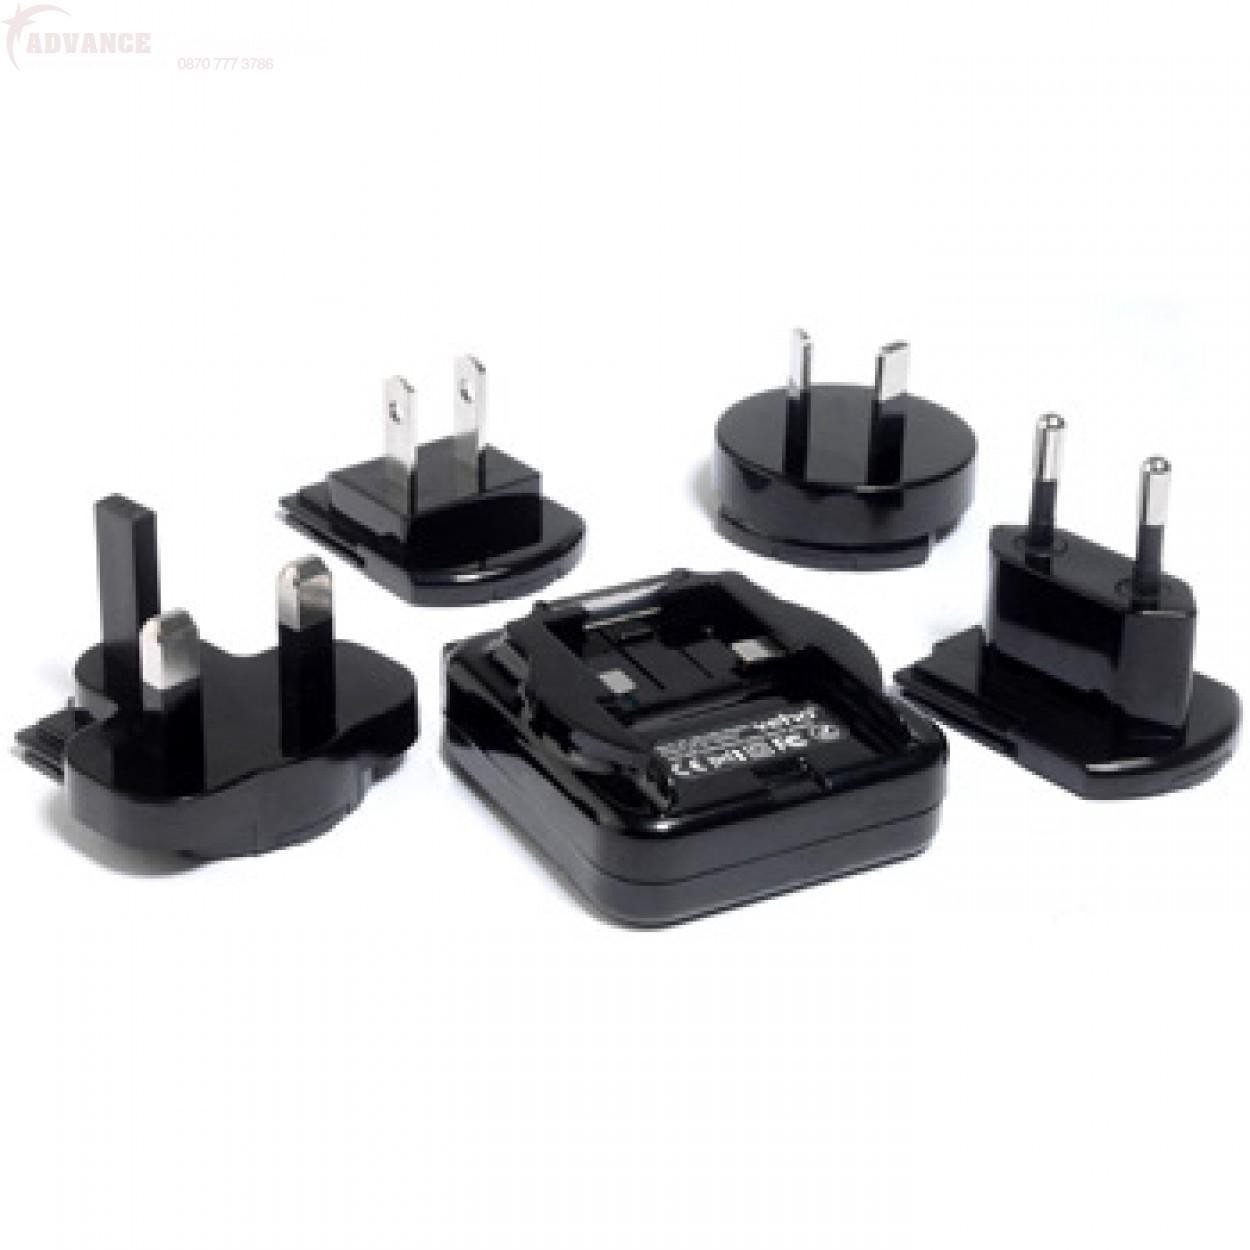 Dolphin 5100, 6100, 6500 and 7600 wall power supply adapter - UK plug, included in each terminal